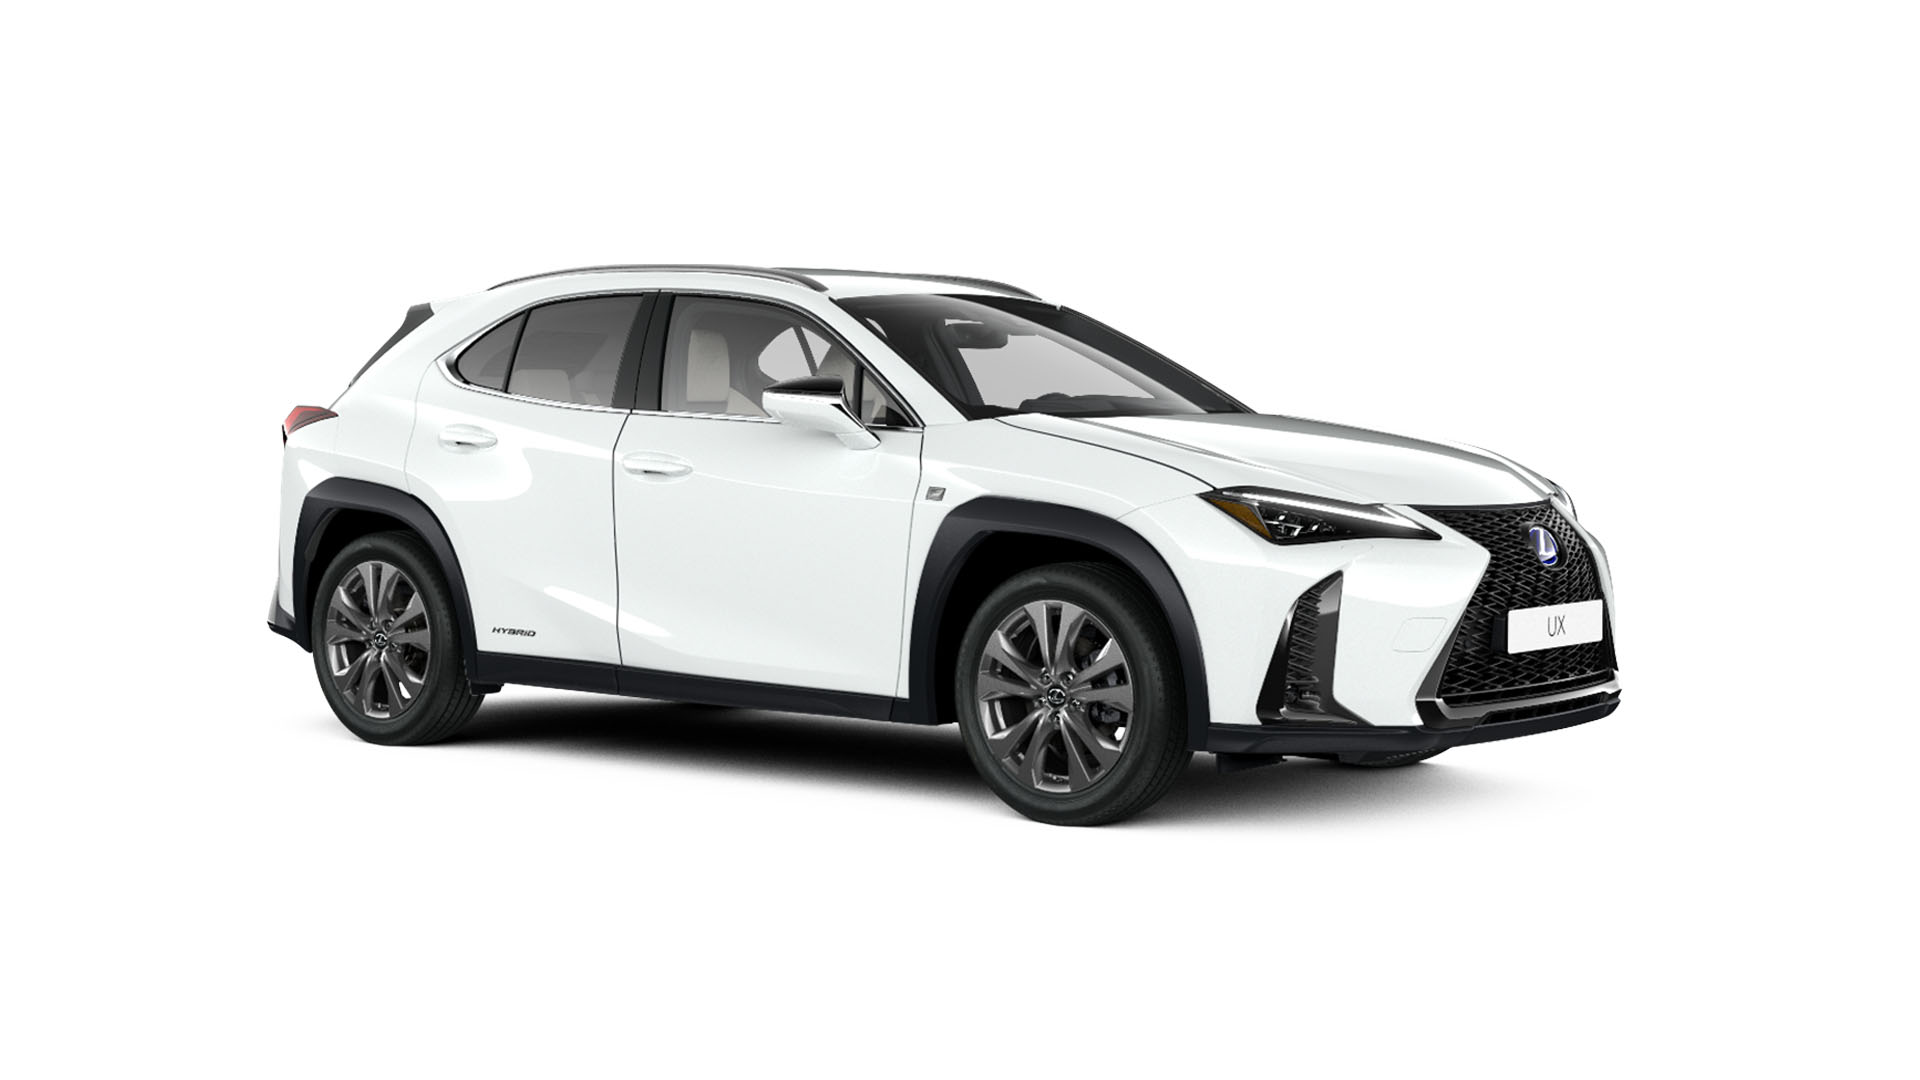 Ux 250h 2019 Compact Suv From 29900 New Lexus Uk